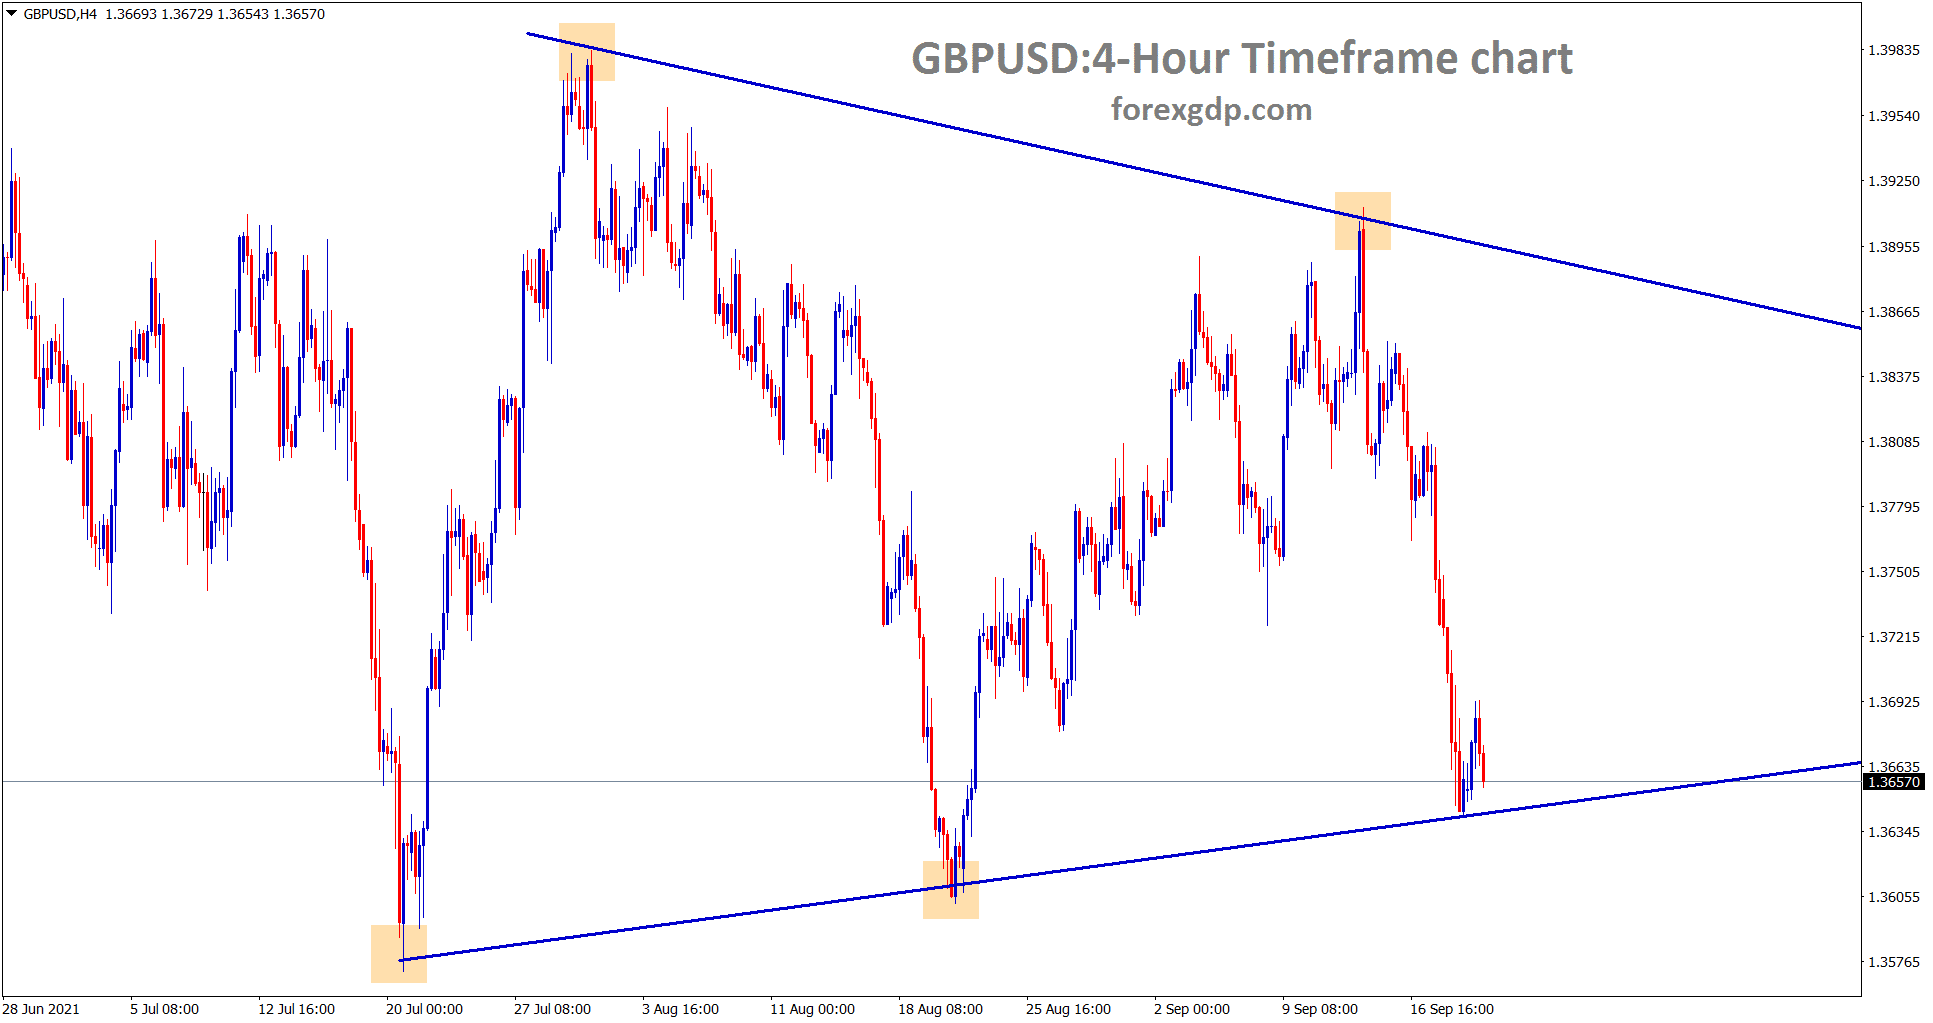 GBPUSD has formed a symmetrical triangle pattern wait for breakout from this pattern